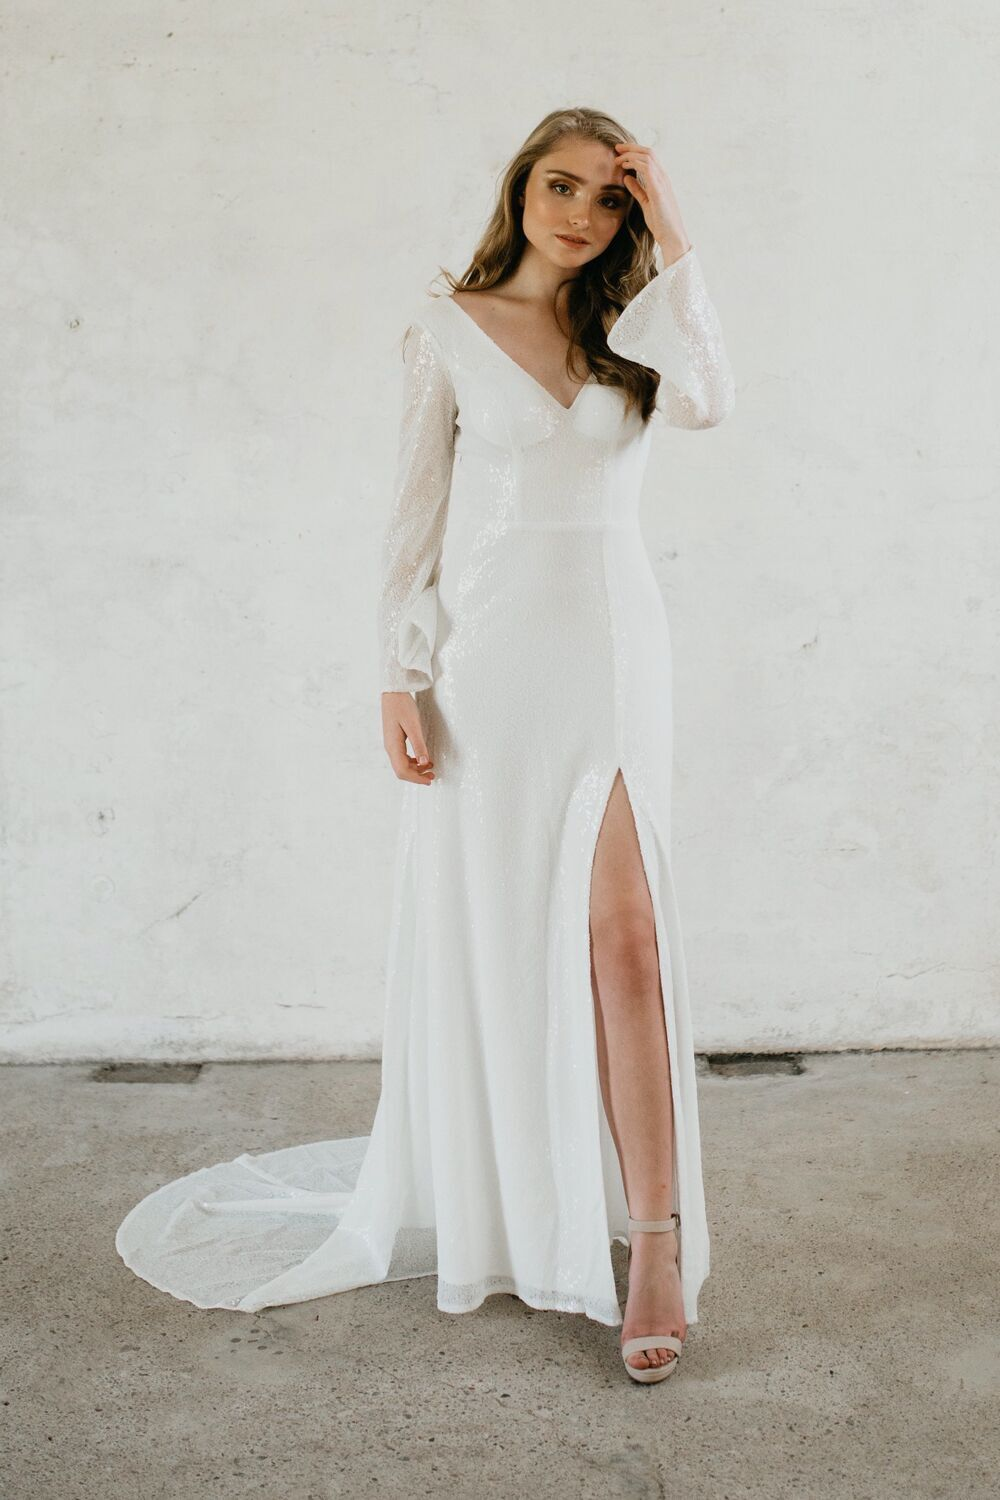 Goddess by Nature on the LOVE FIND CO. Dress Concierge